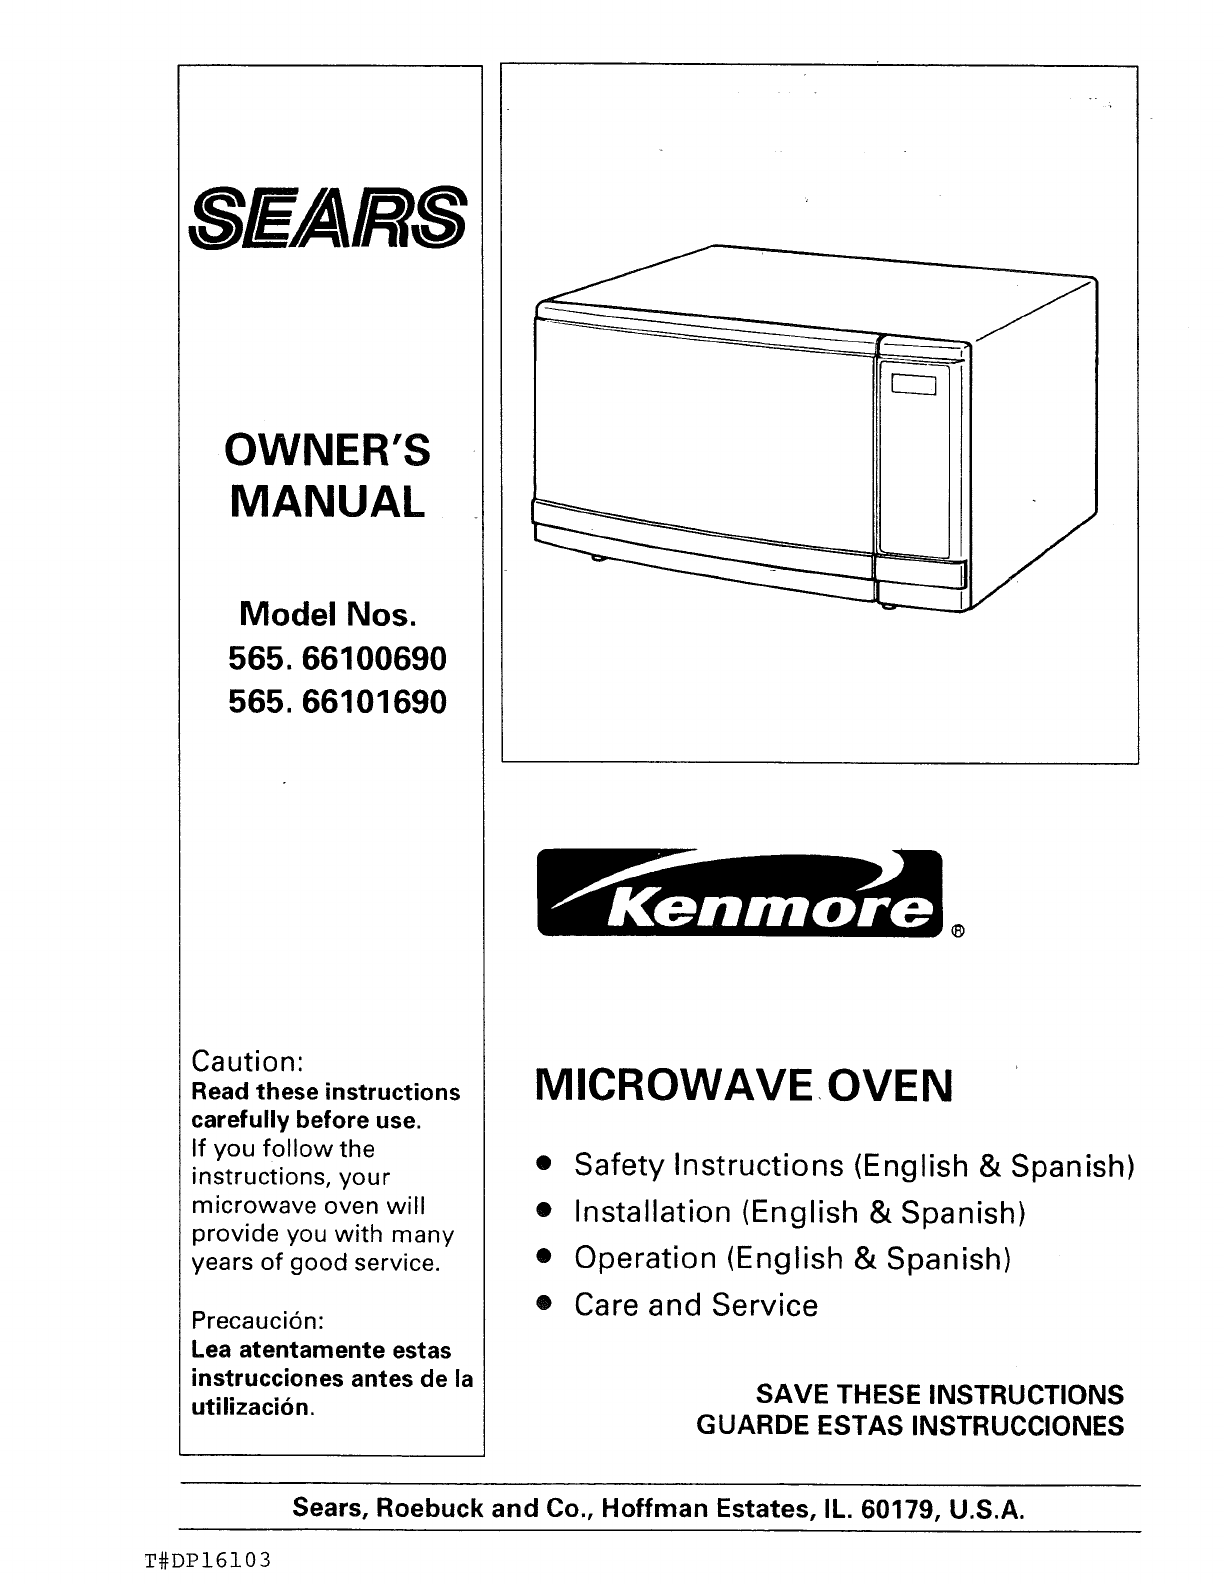 kenmore microwave oven 565 66101690 user guide manualsonline com rh kitchen manualsonline com Kenmore Microwave Hood Combination Kenmore Microwave Troubleshooting